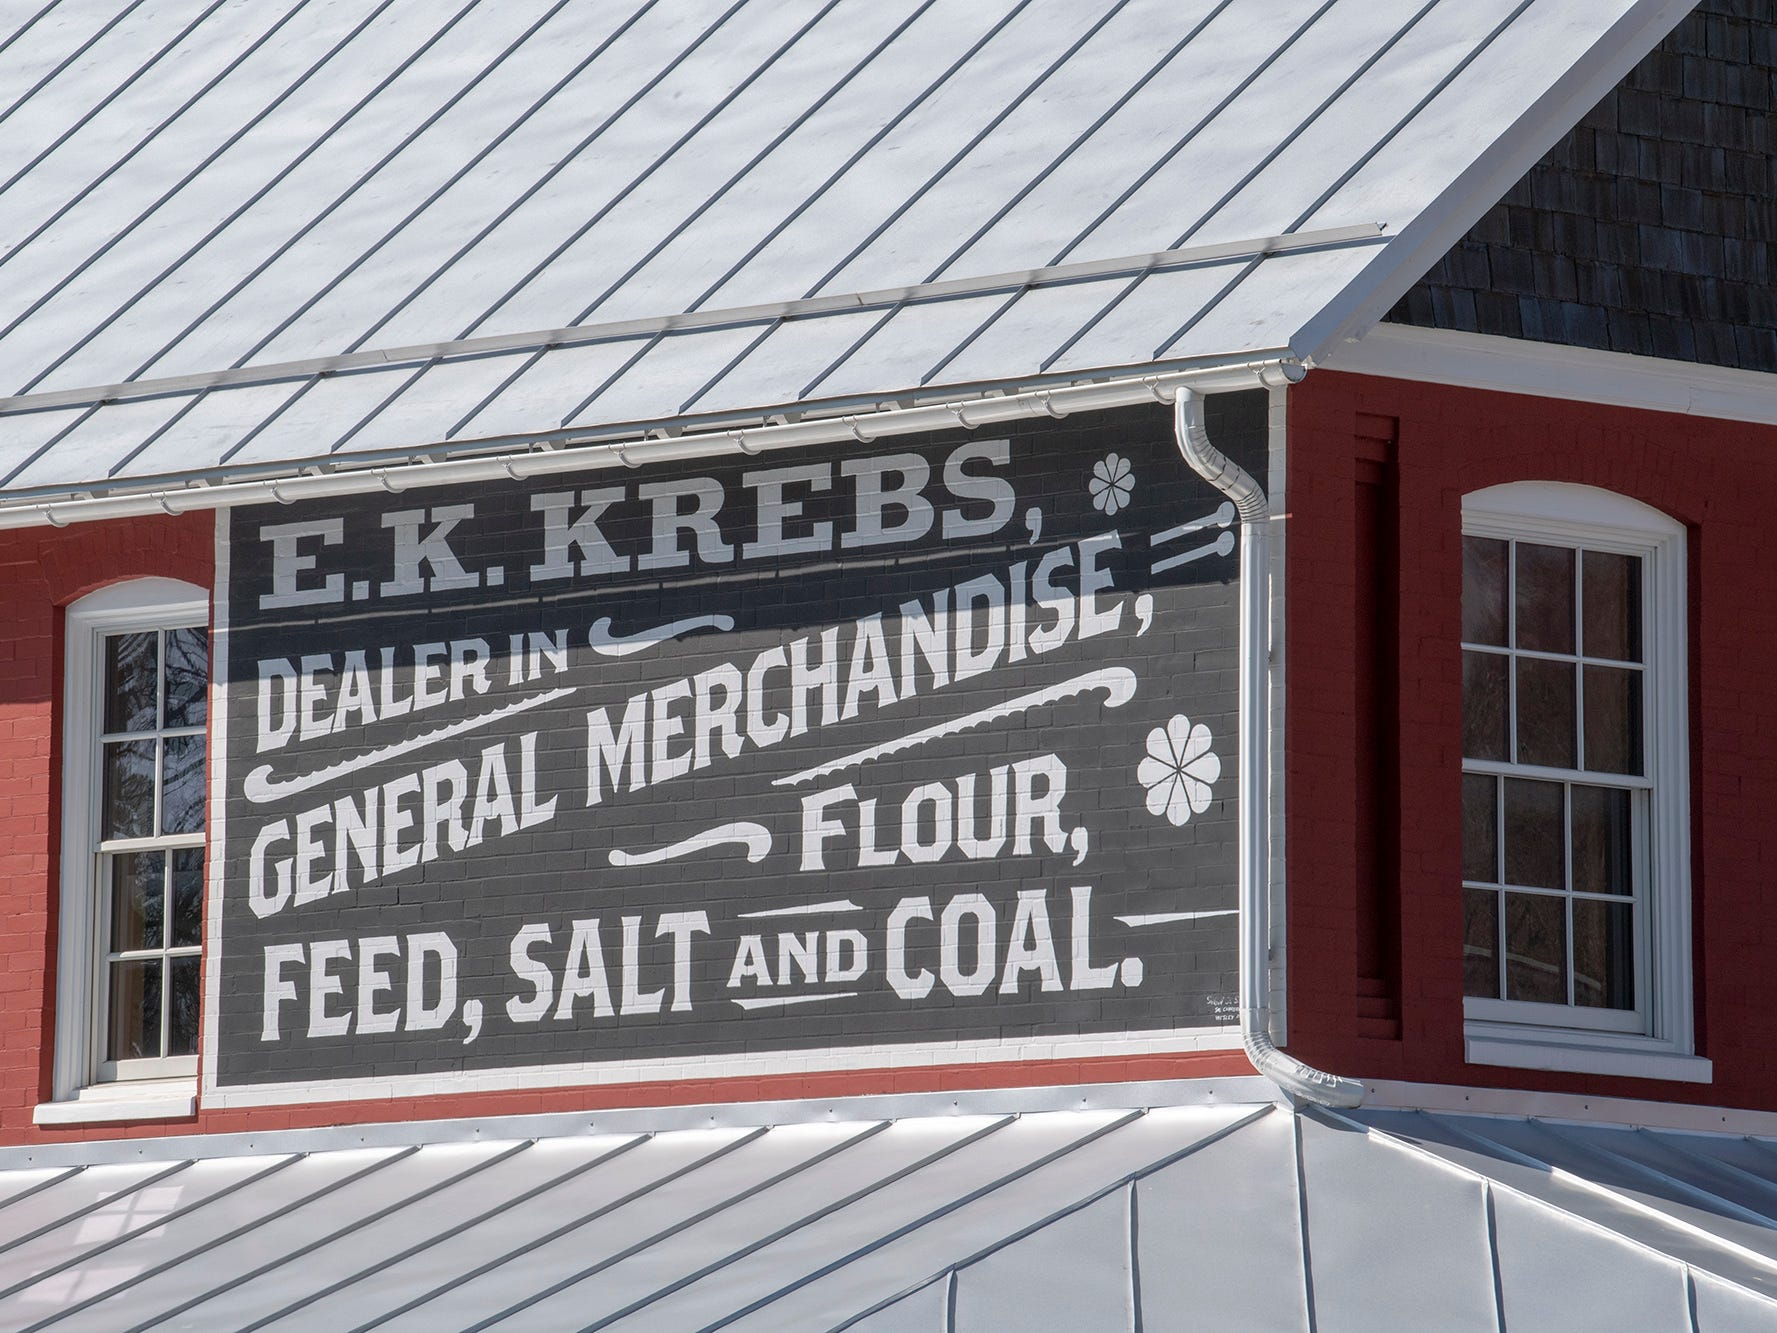 David Keller used an old photo of the building to recreate the painted sign that is seen today on the side of the building. He also installed a new, traditional standing seam roof using old methods to install it.